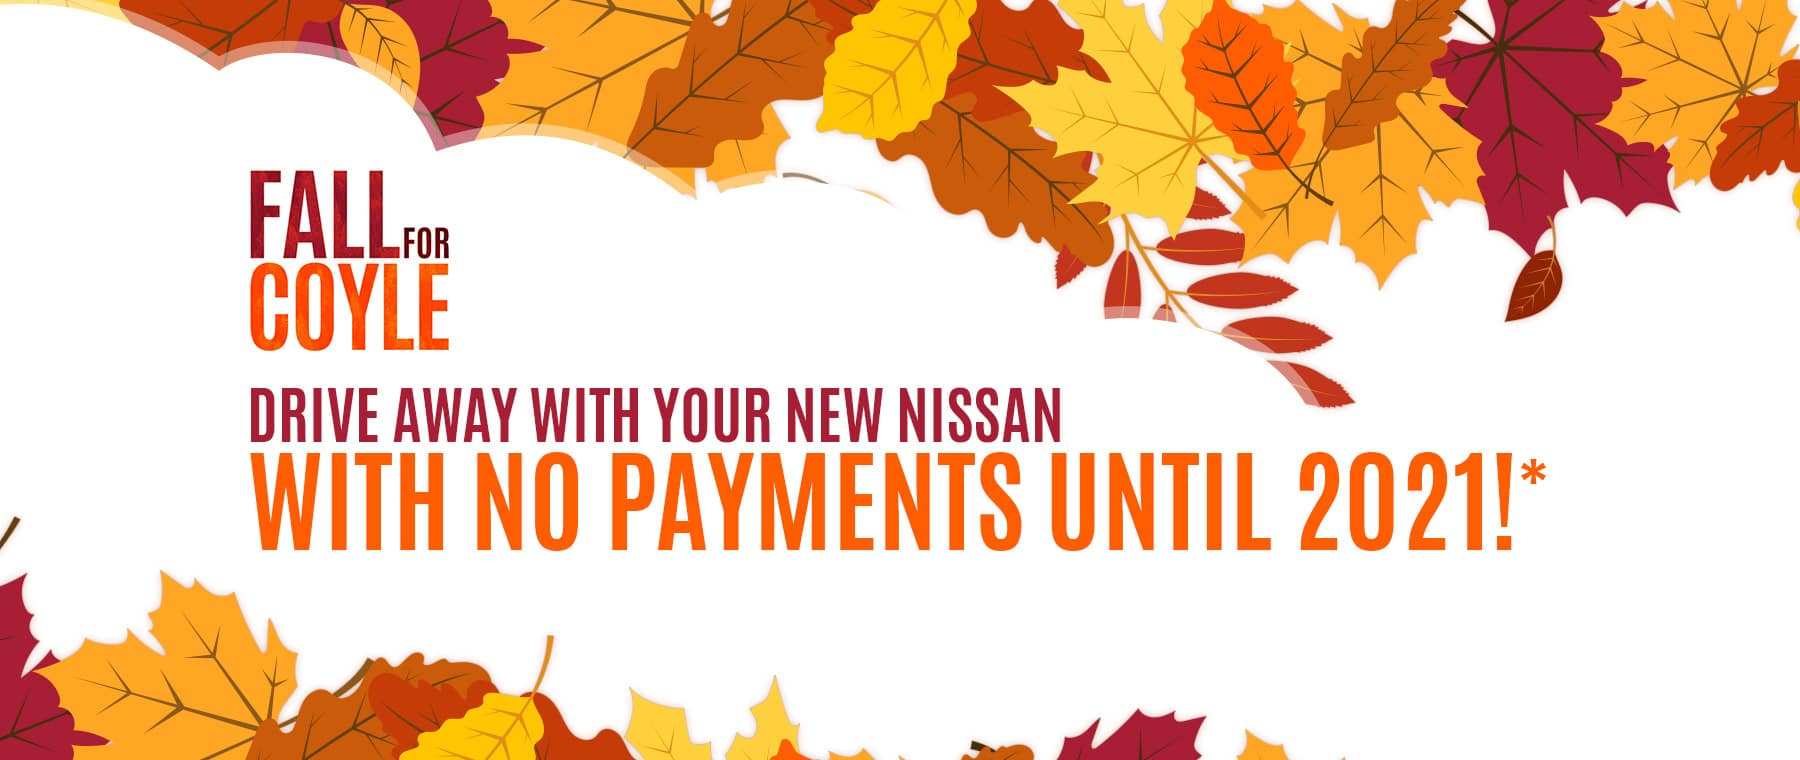 No Payments on New Nissan at Coyle in Clarksville, Indiana